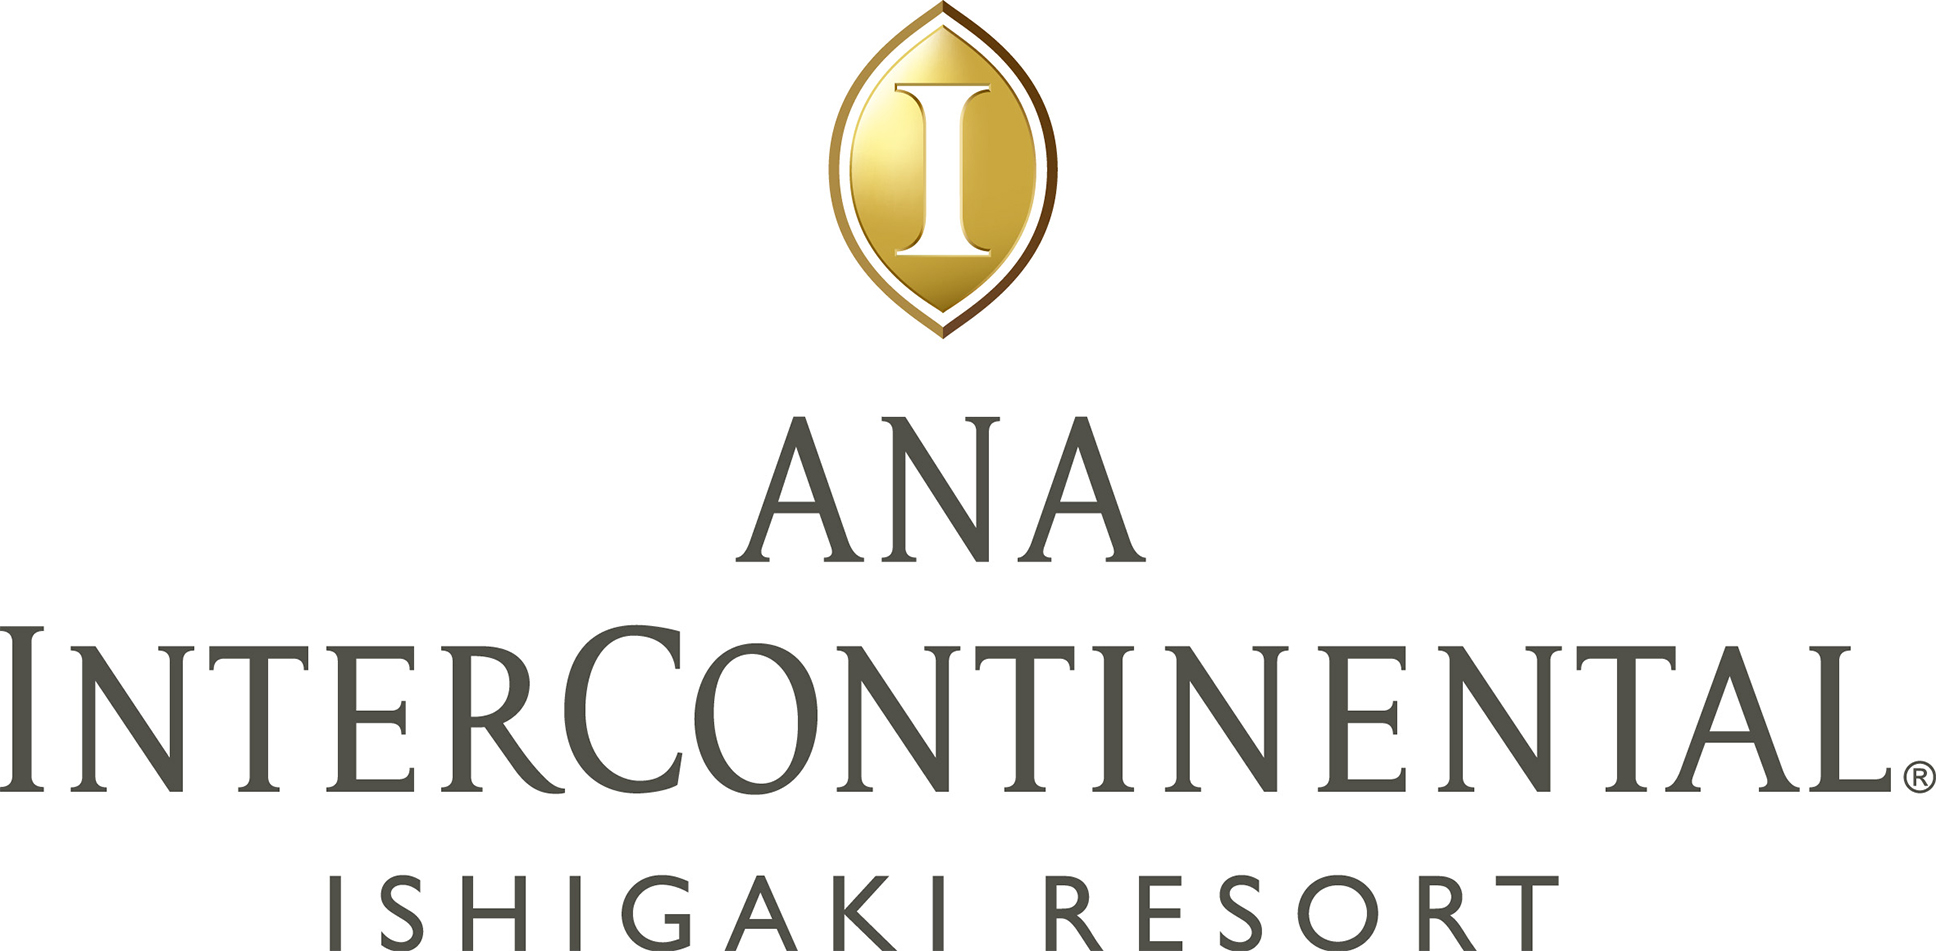 ANA InterContinental ISHIGAKI BEACH RESORT